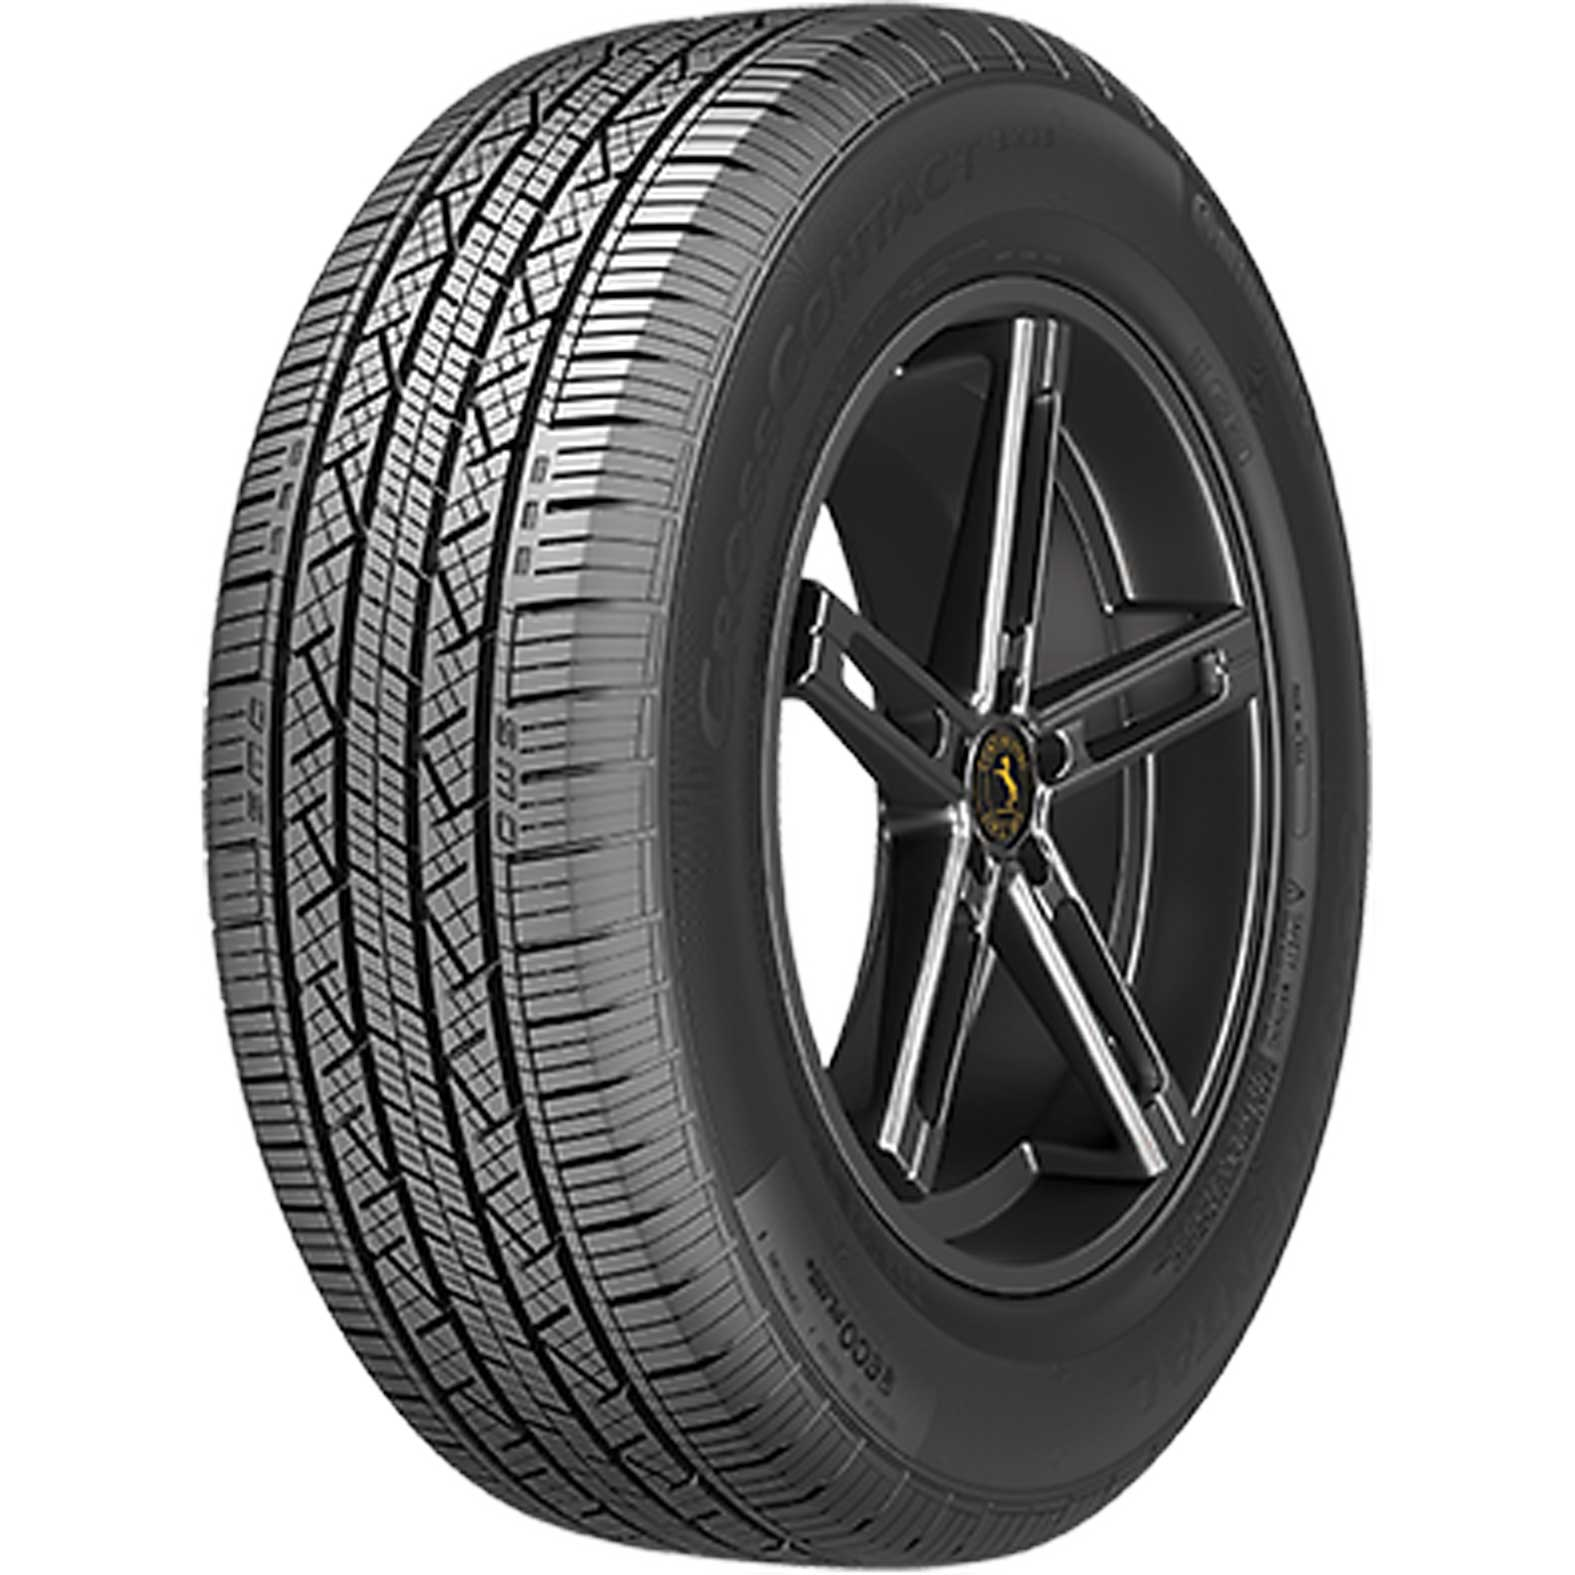 Continental CrossContact LX25 tire - angle